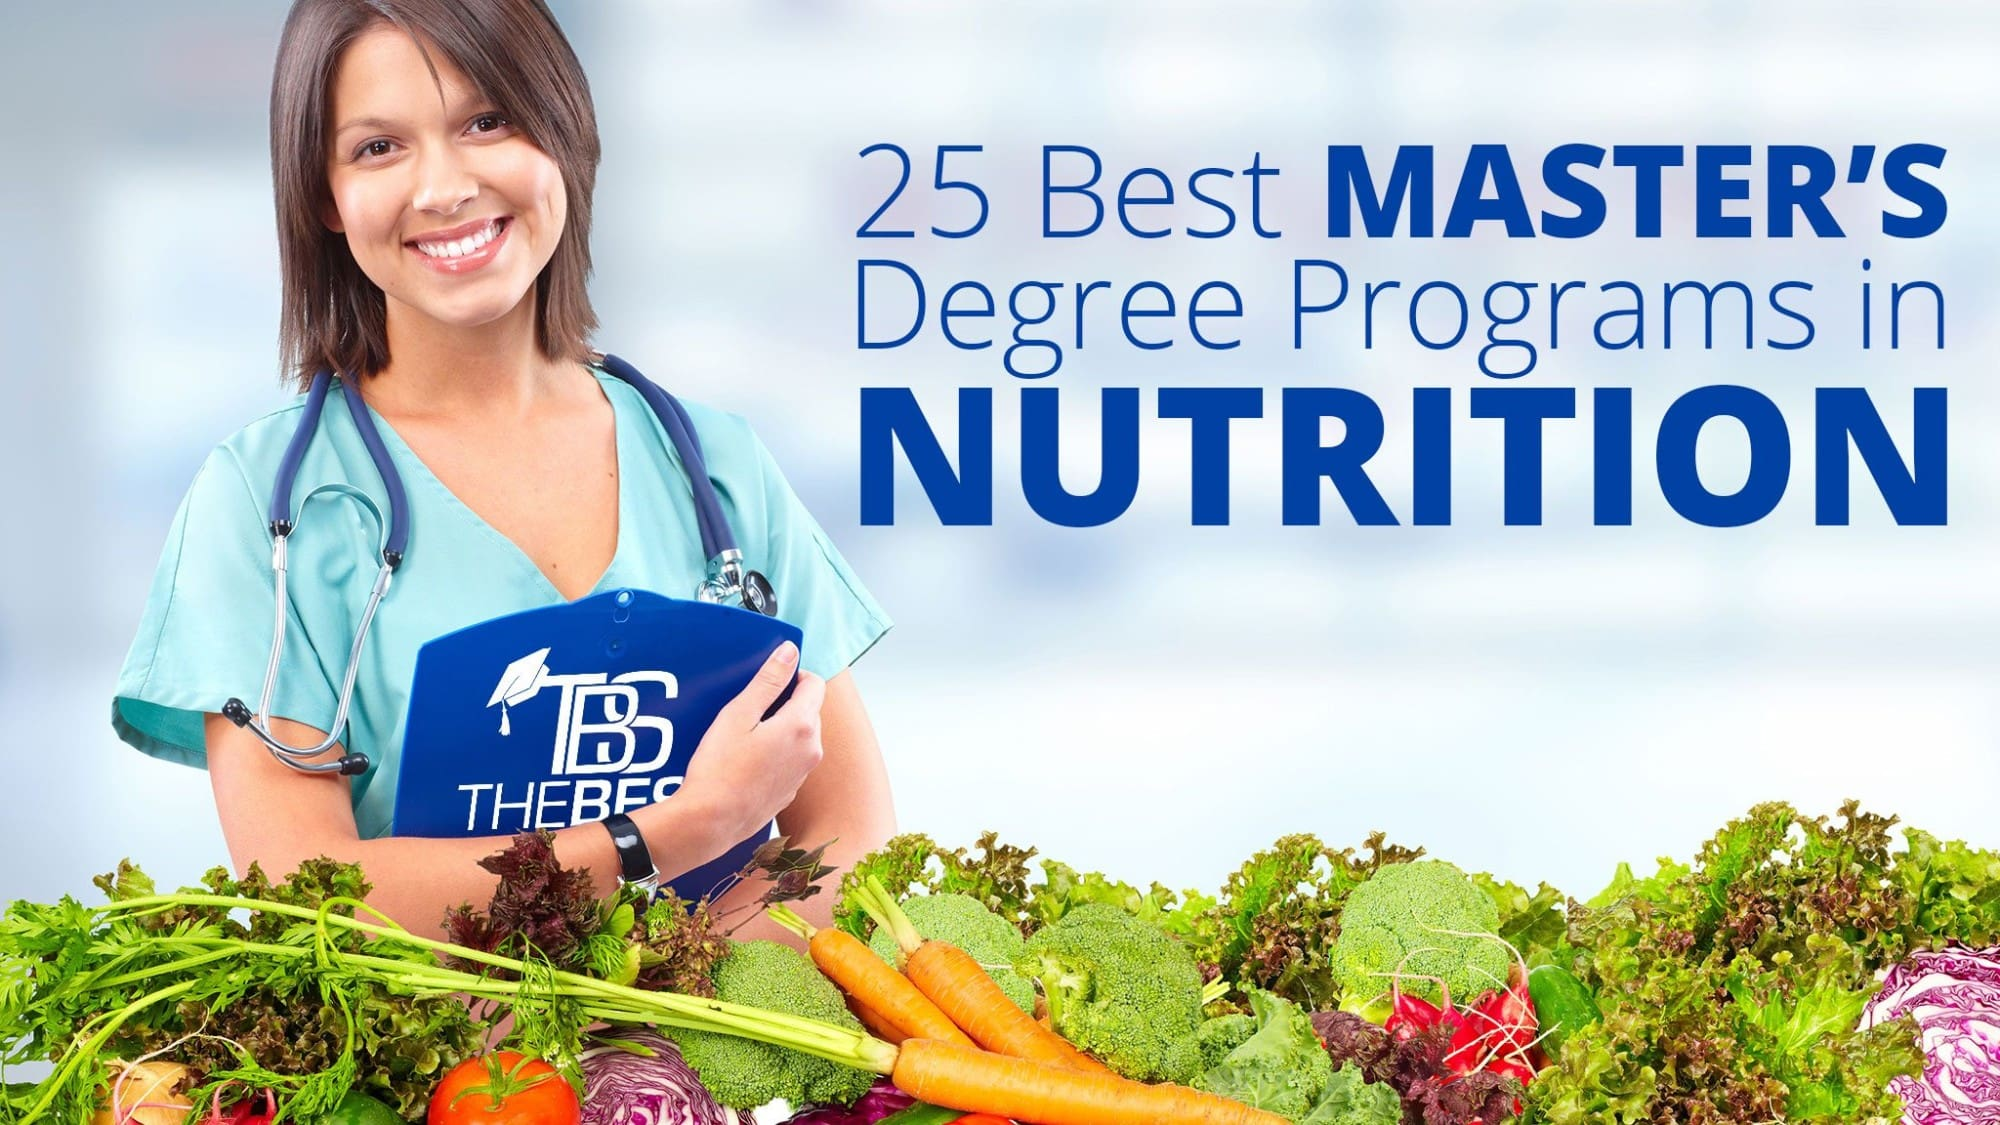 The 25 Best Masters Degree Programs In Nutrition